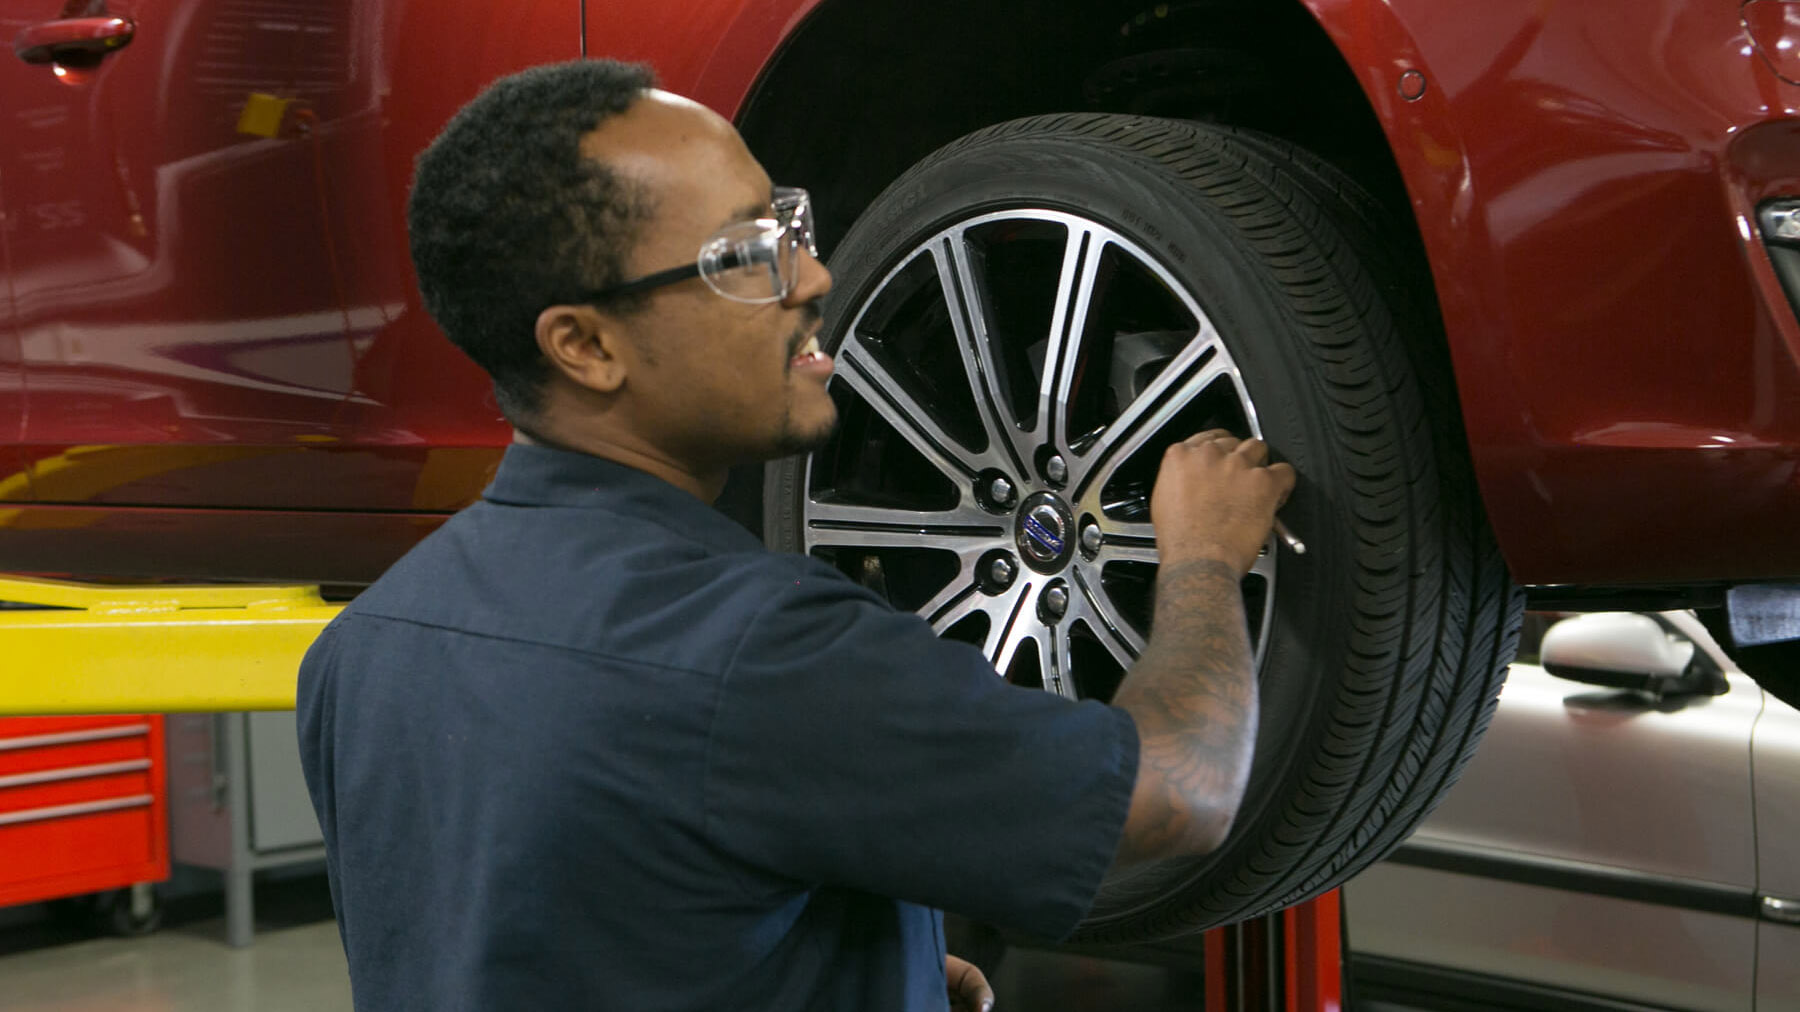 Specialized Training_4x3_Volvo_Courses_Tire Change